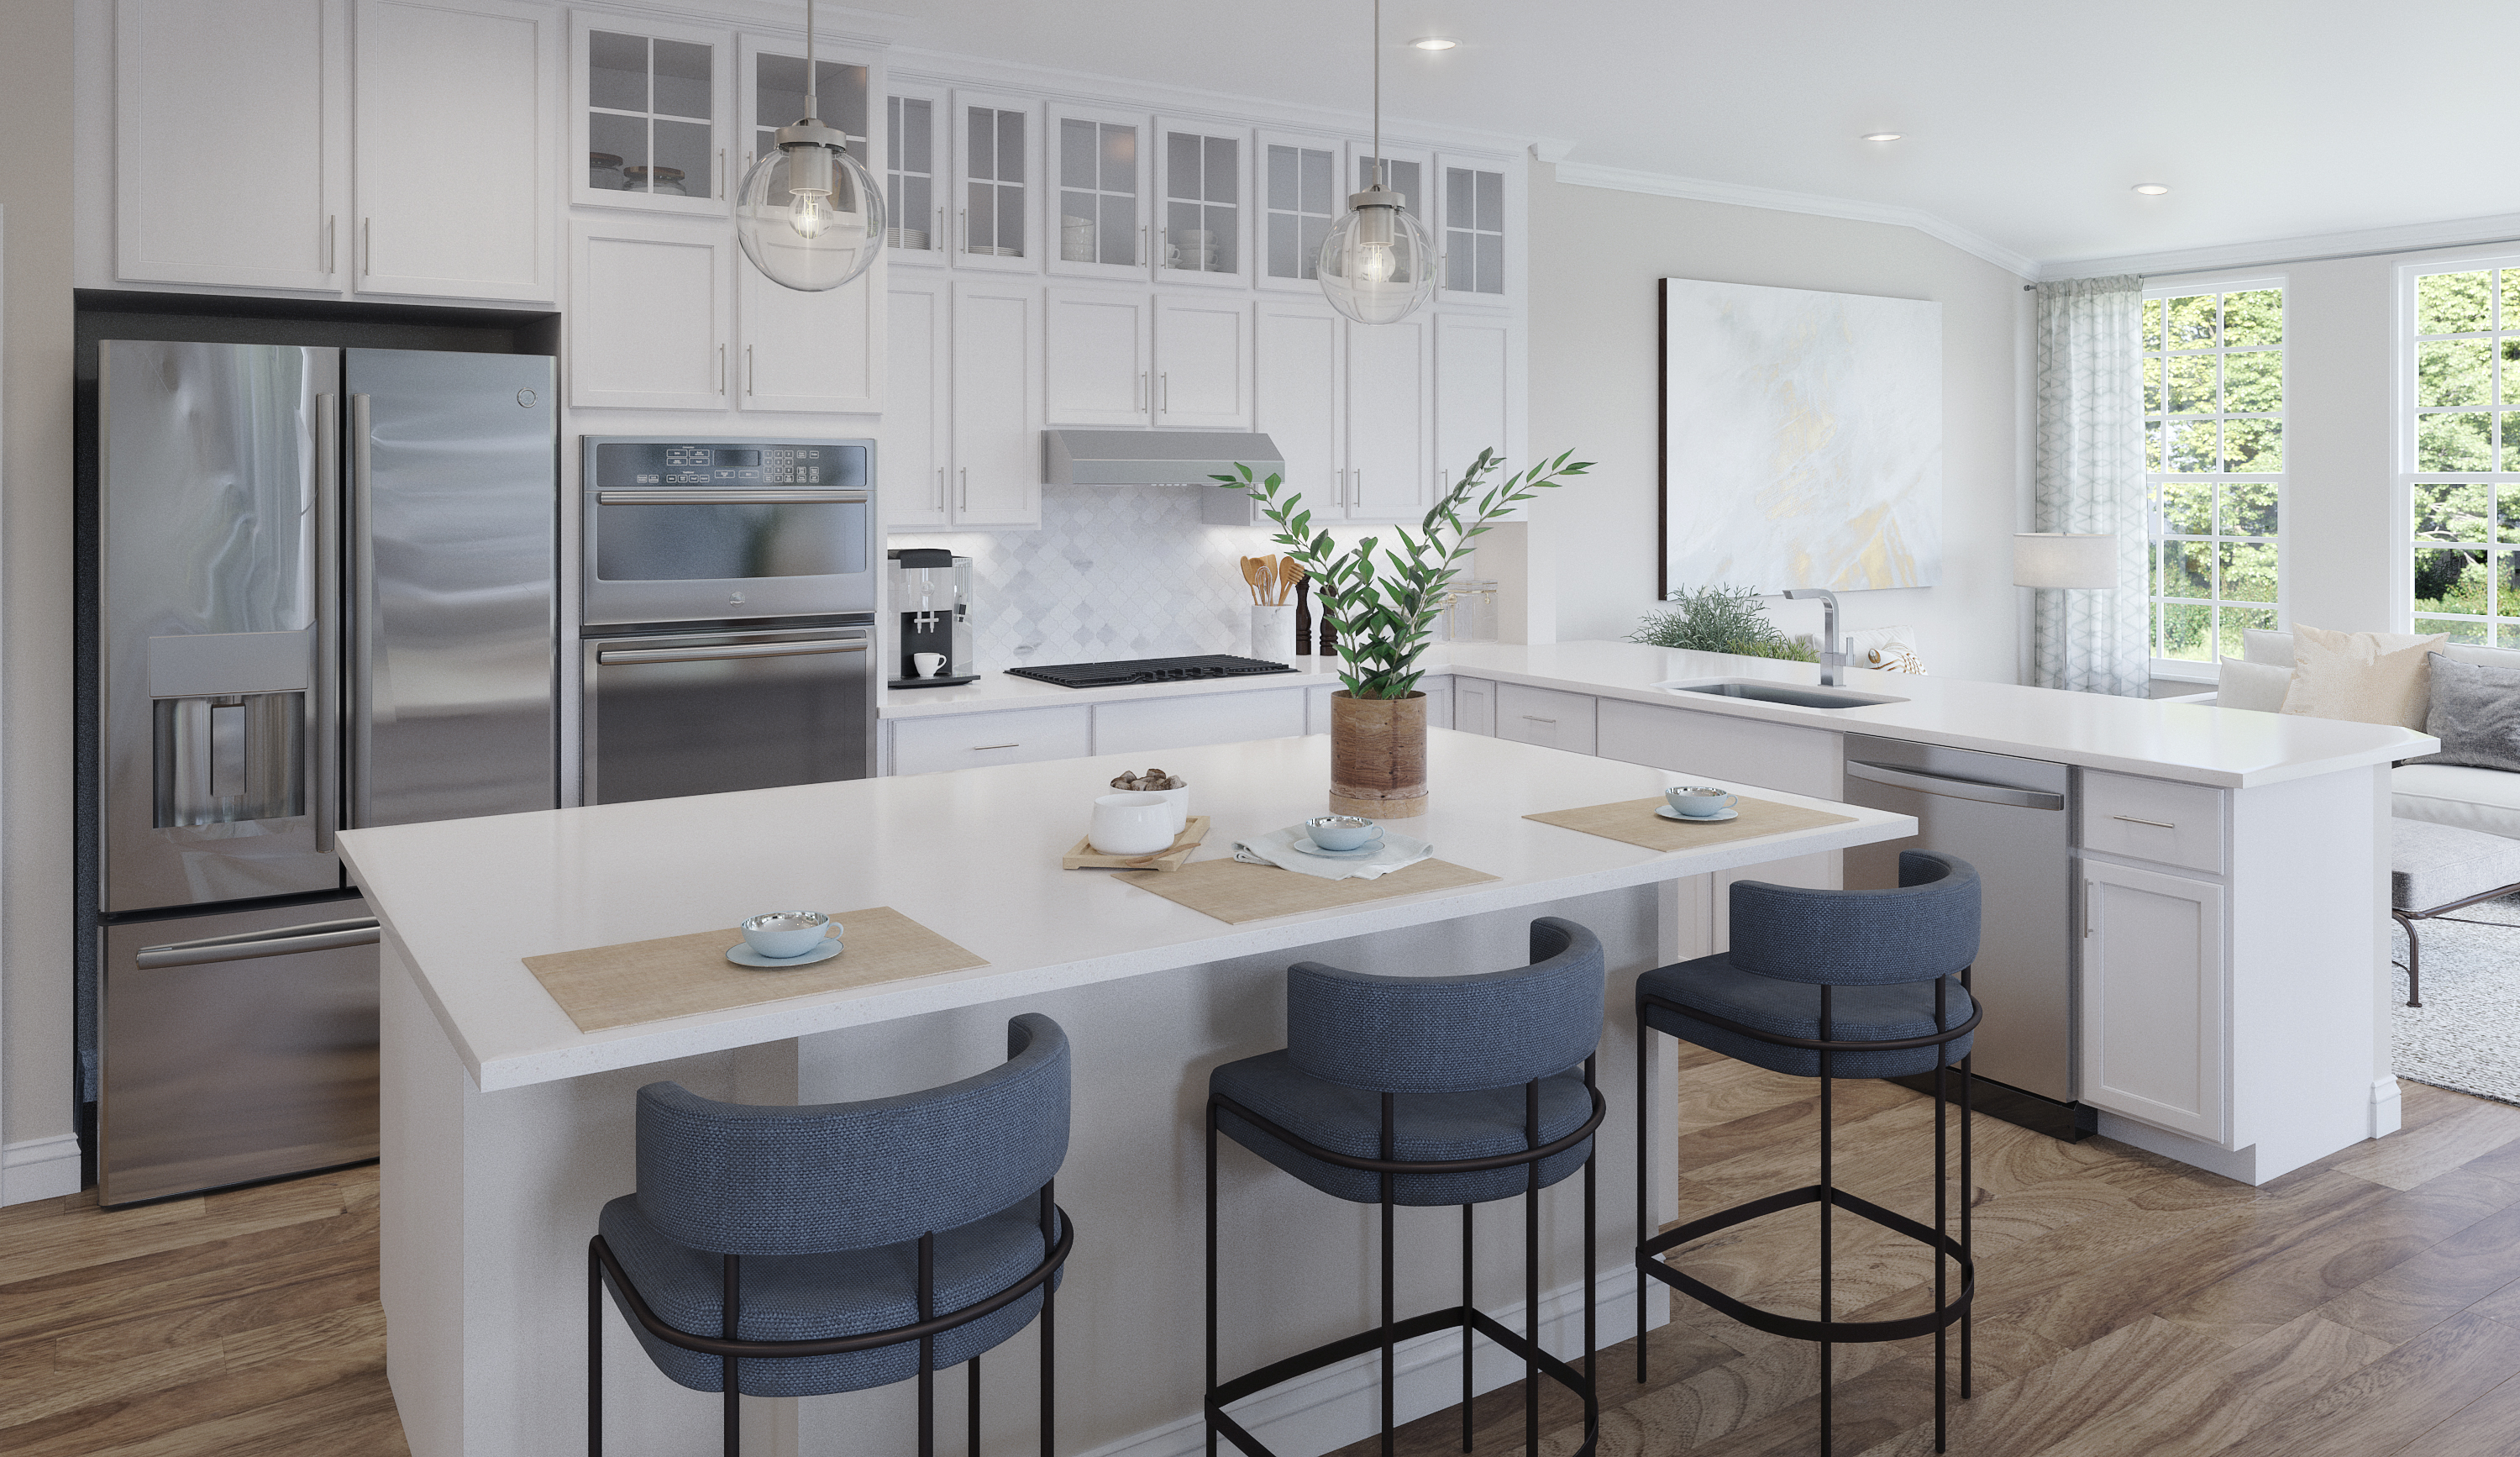 Inside Look: The Jamesport at Westhampton